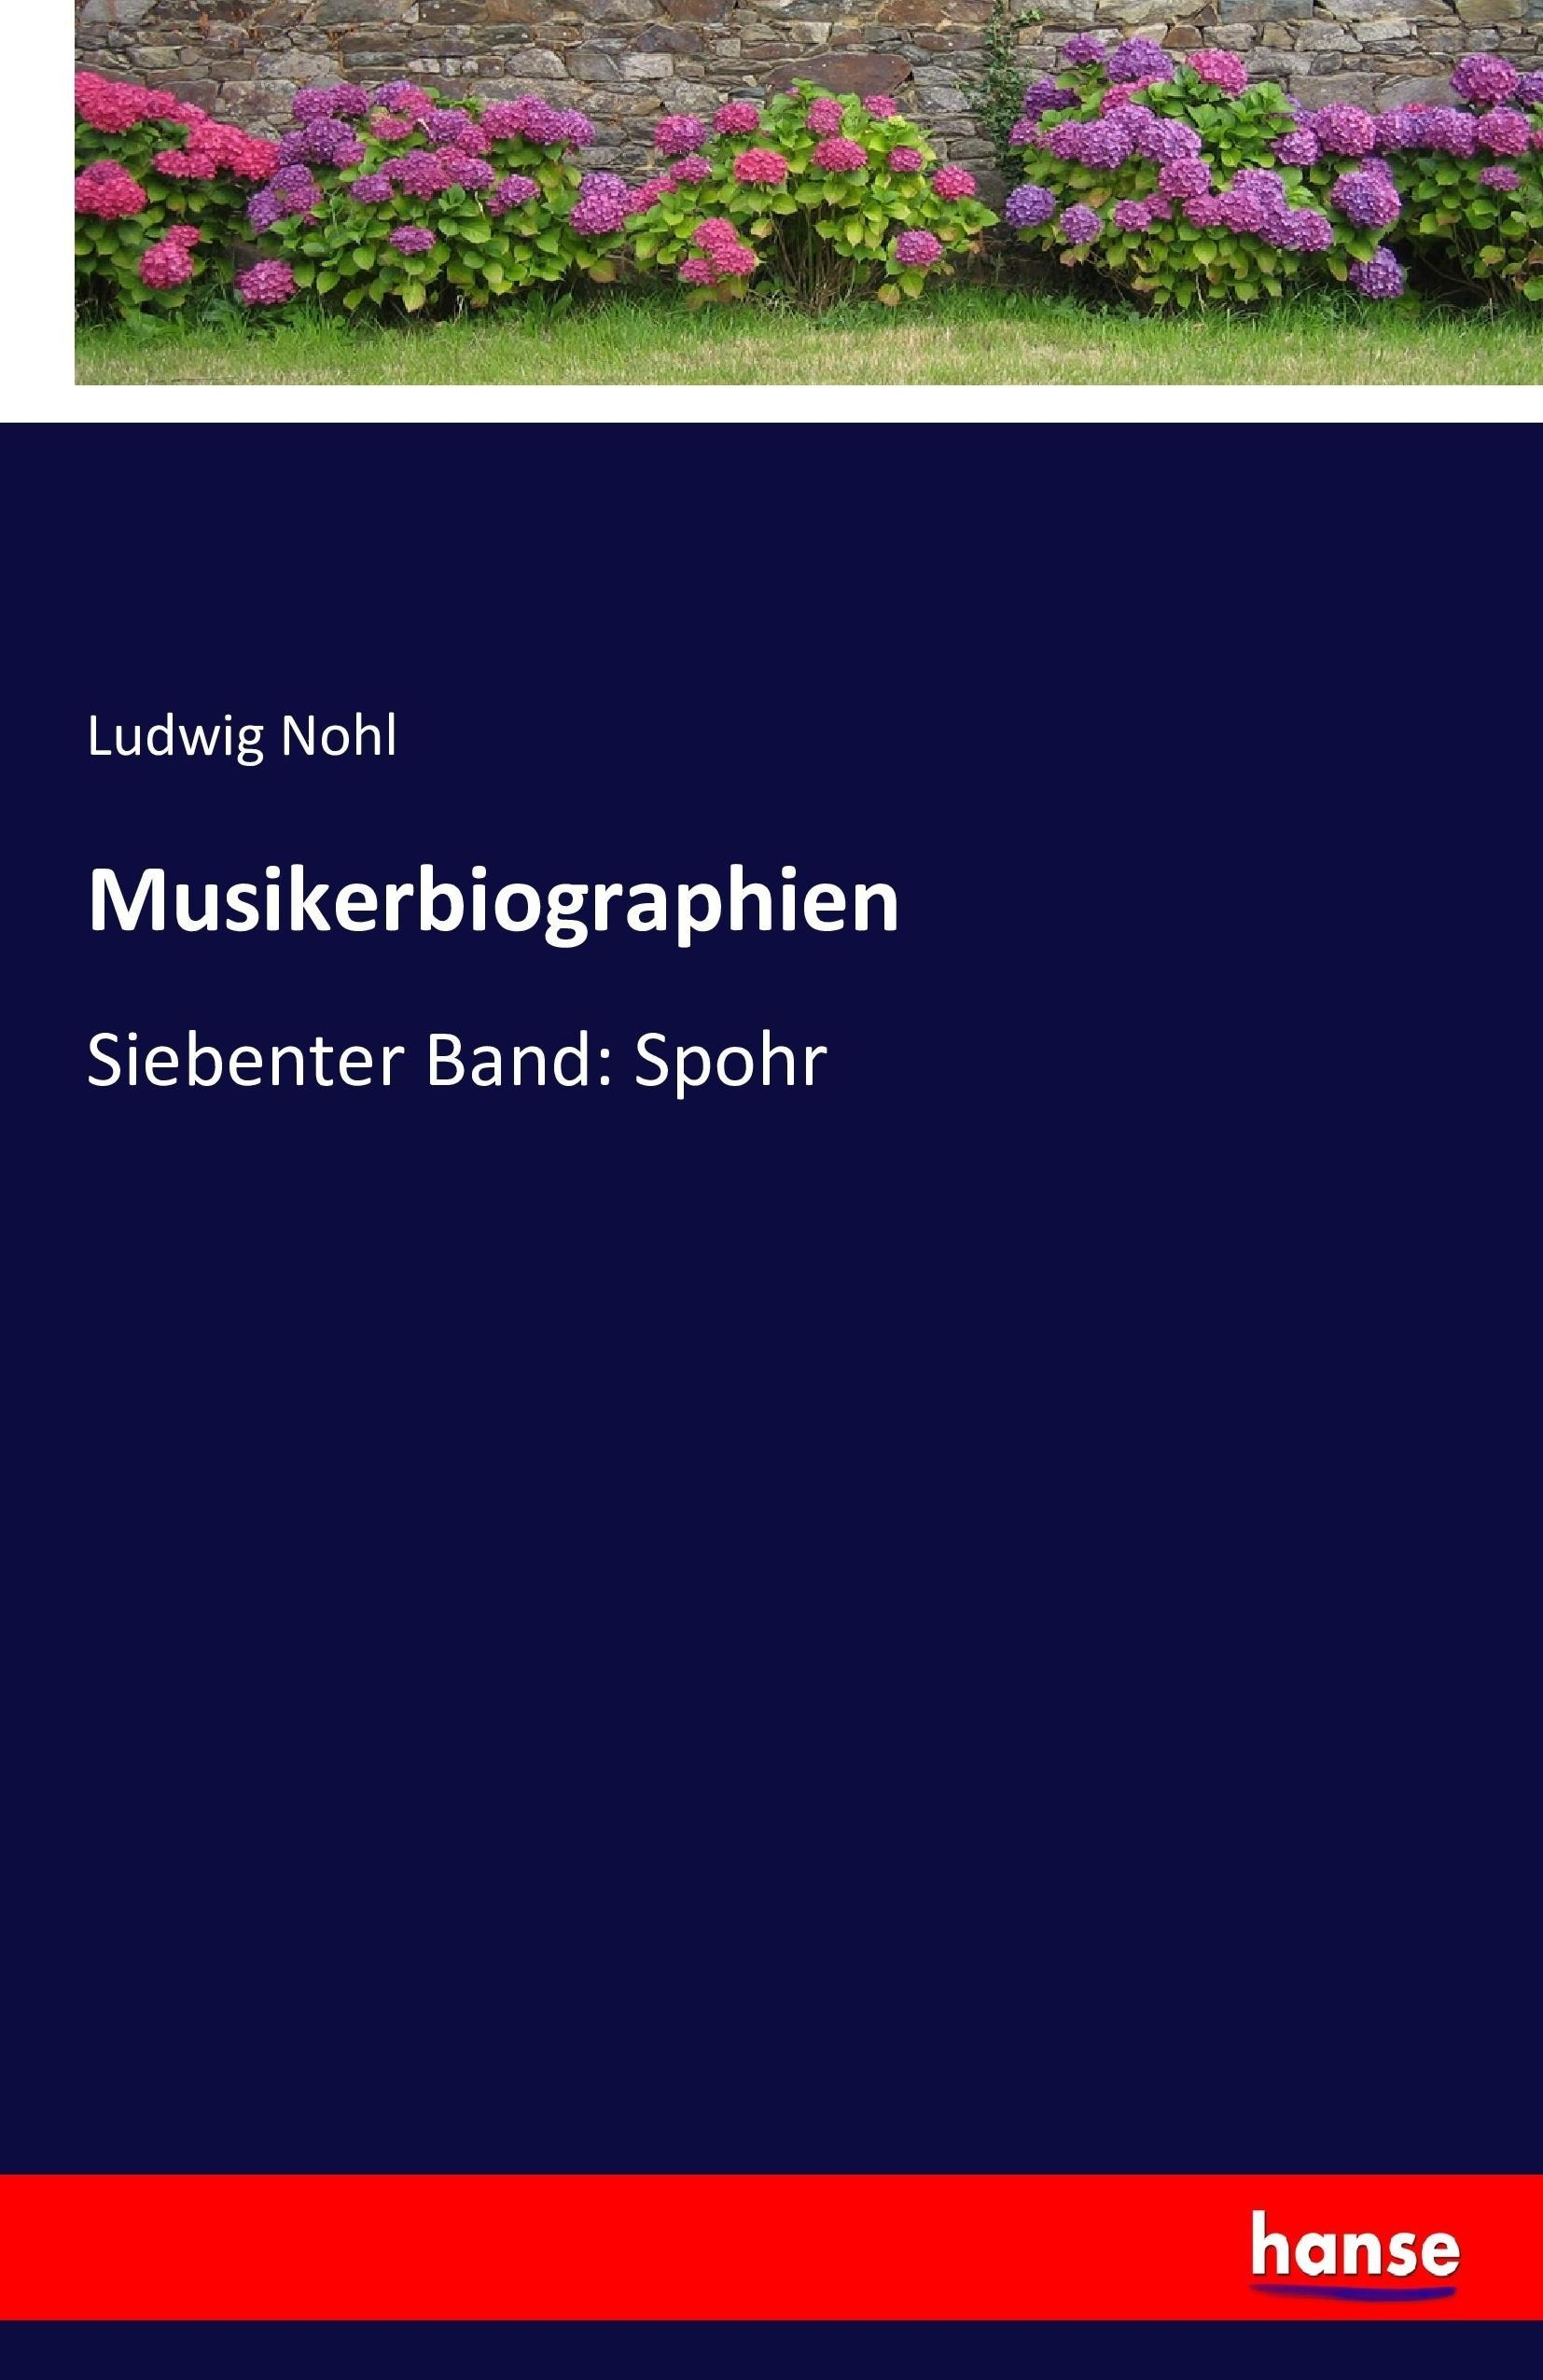 Musikerbiographien Ludwig Nohl